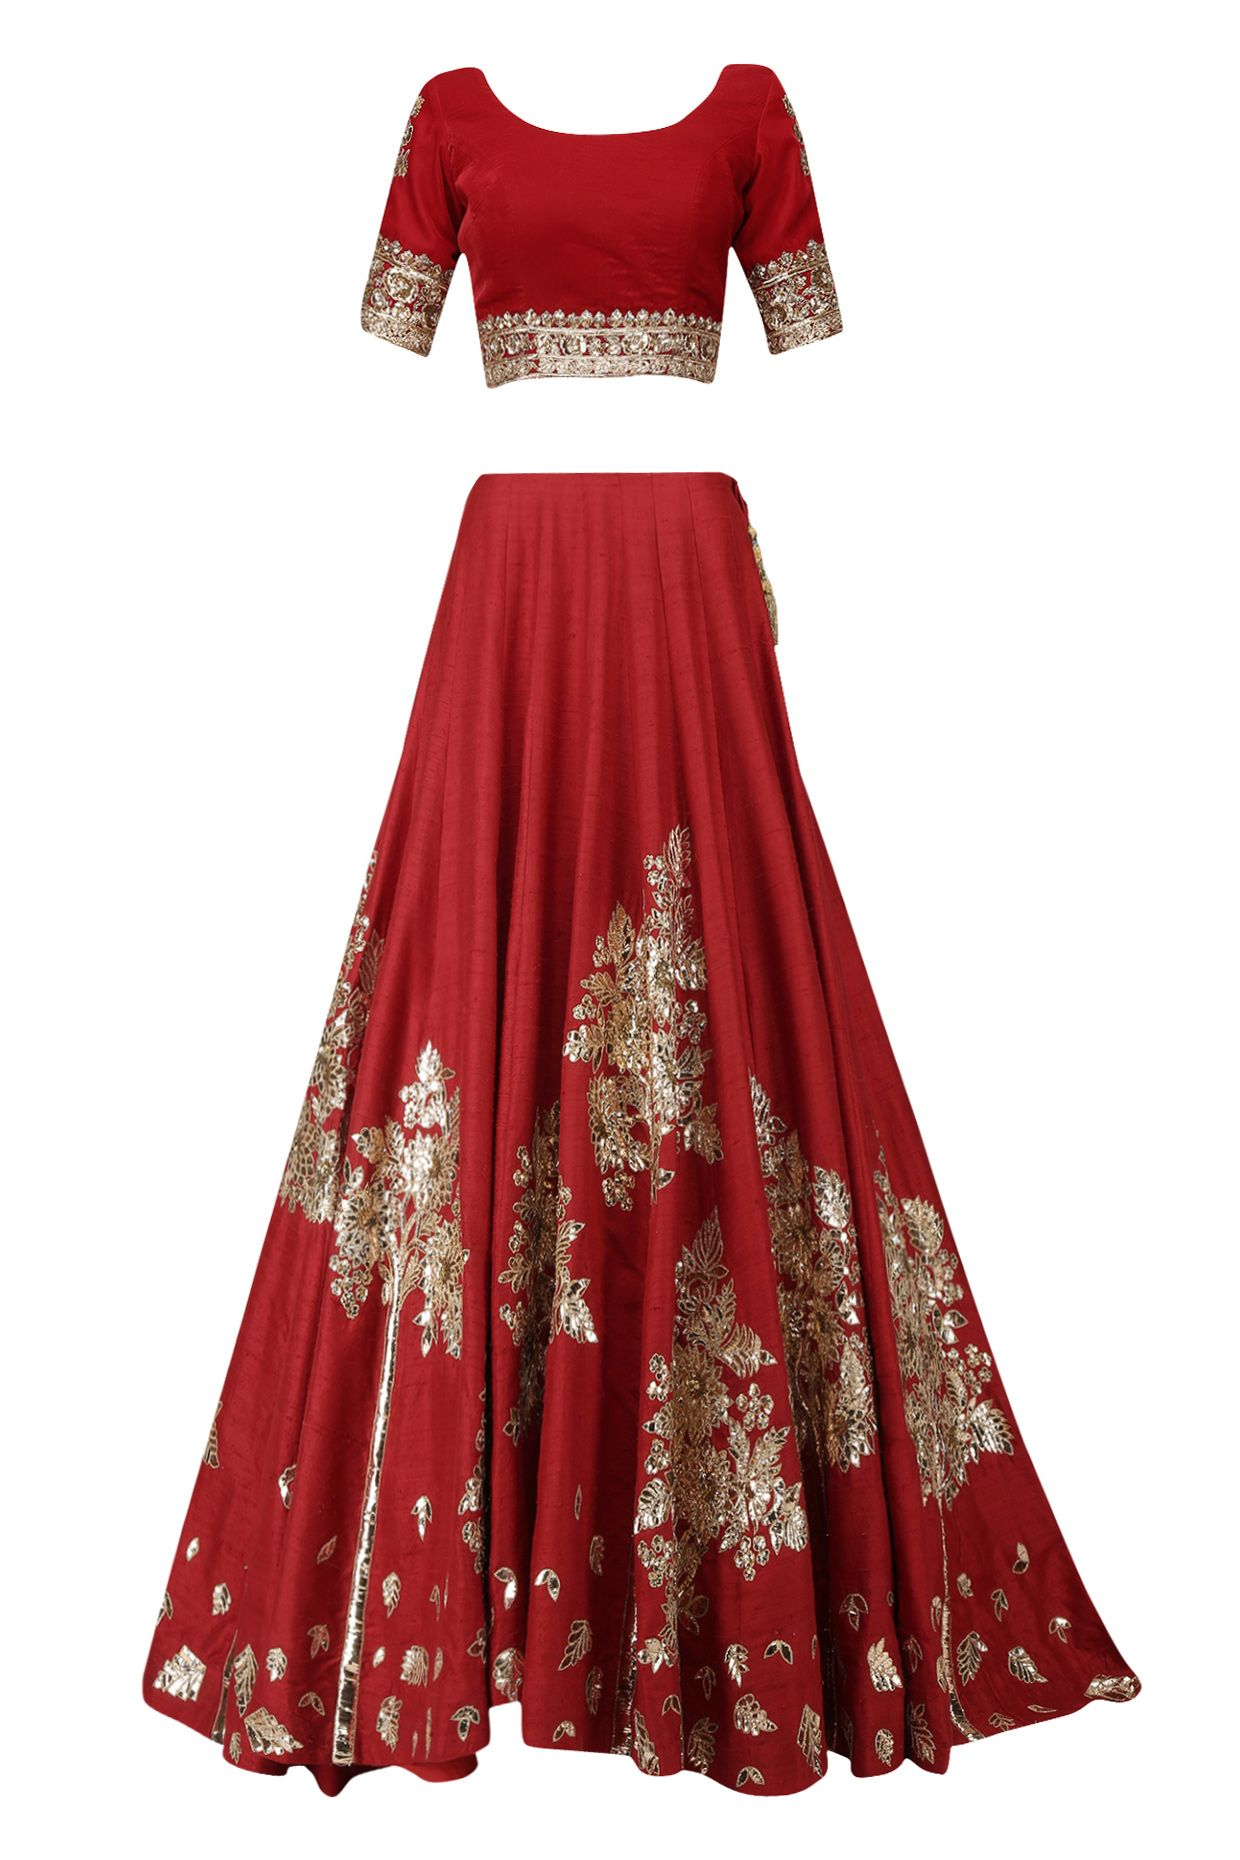 faaf958a64 Red and gold badla work lehenga set available only at Pernia's Pop Up Shop.